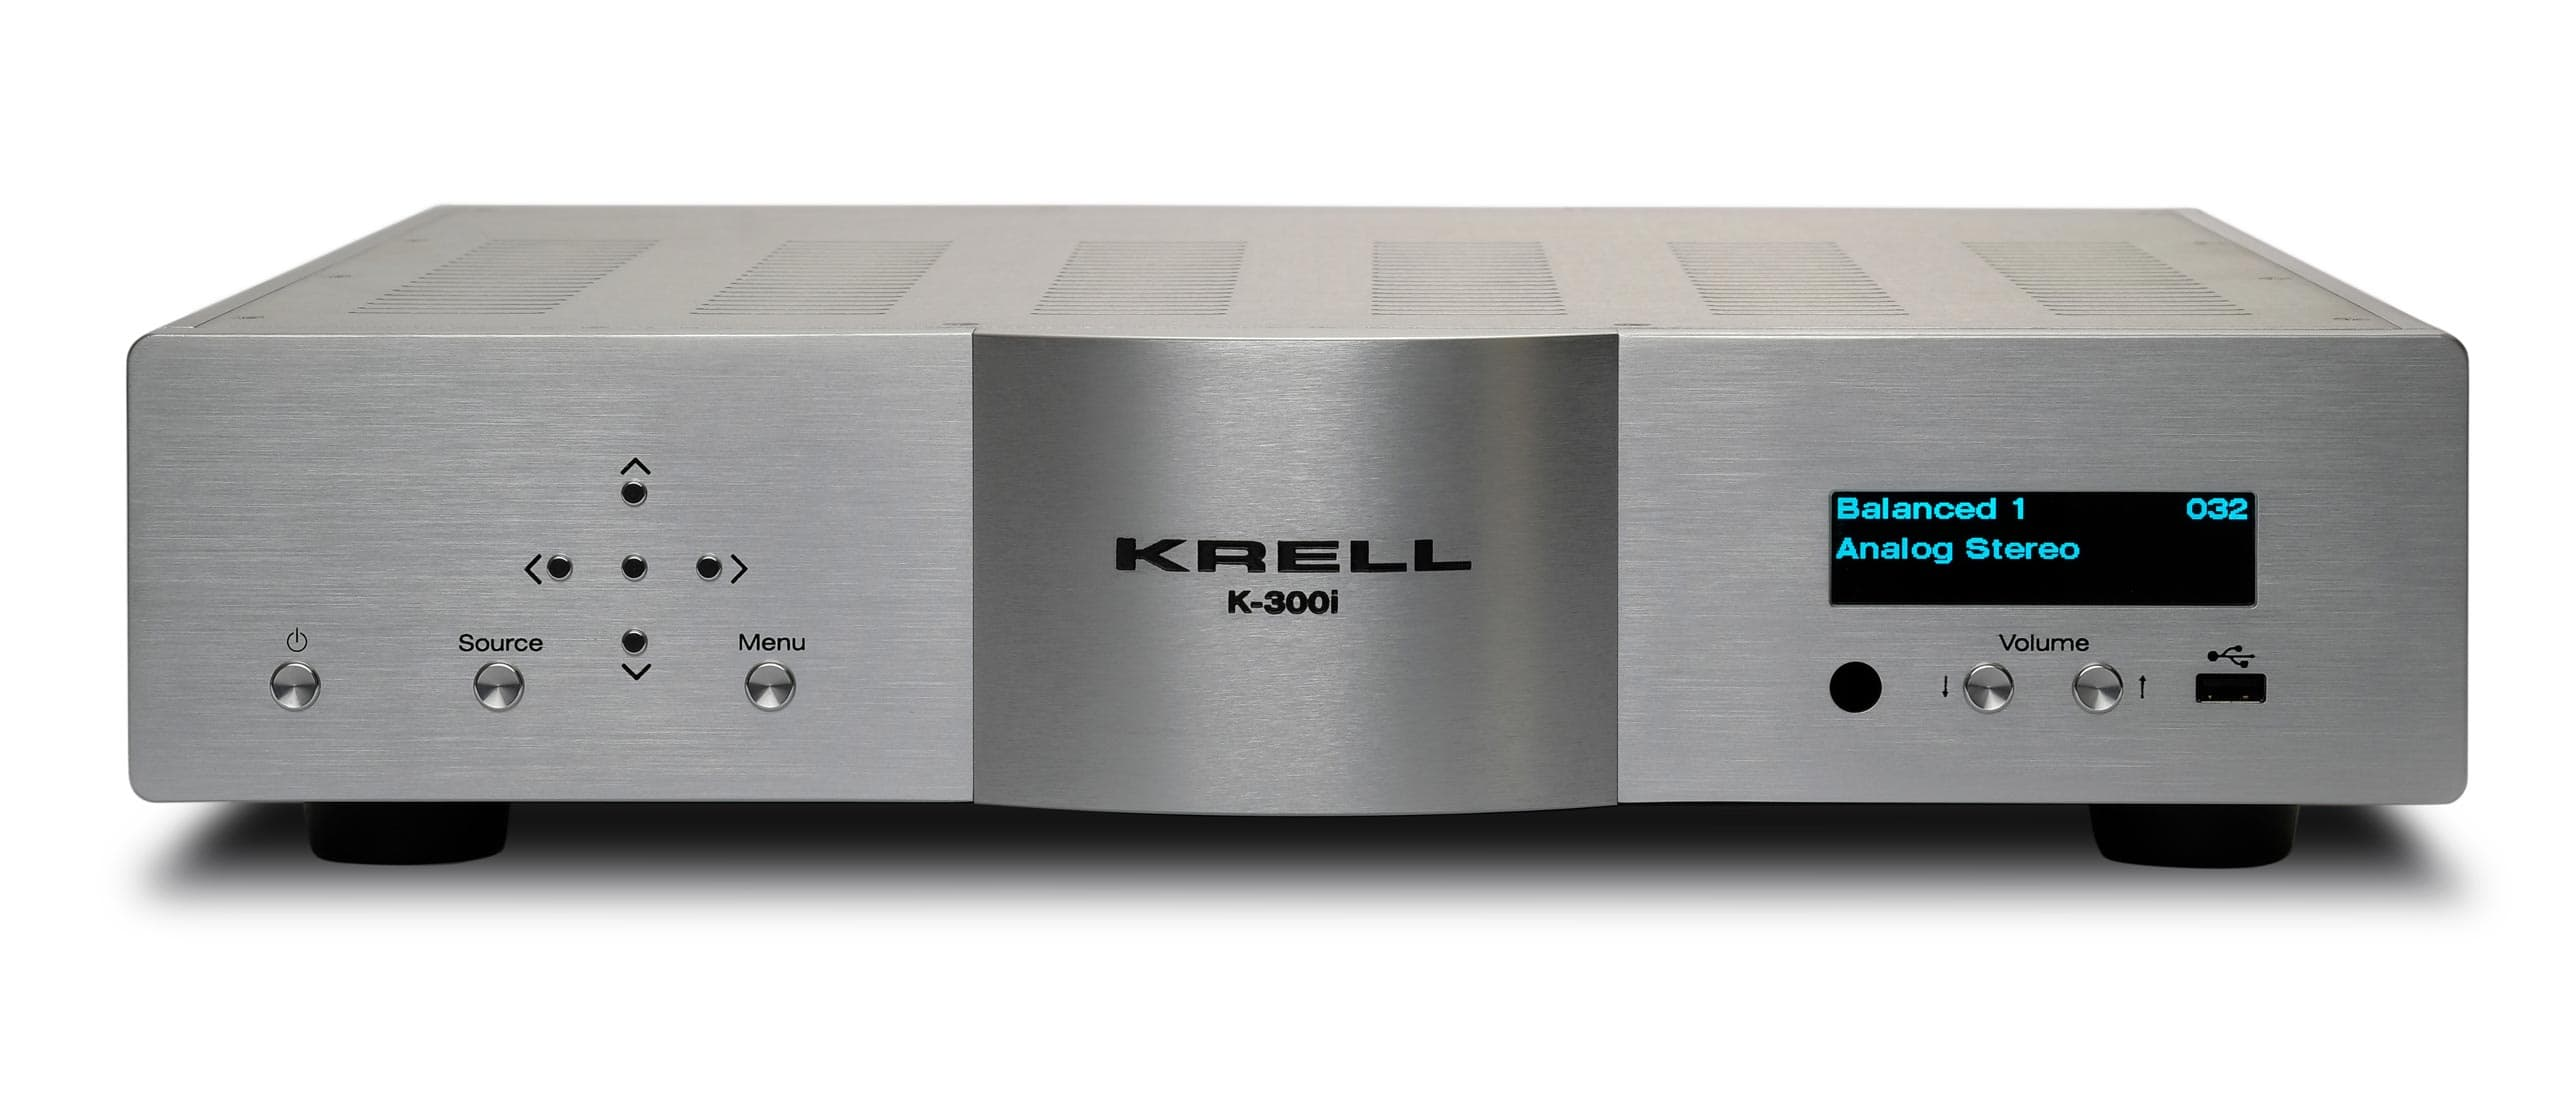 Krell integrated amp/DAC